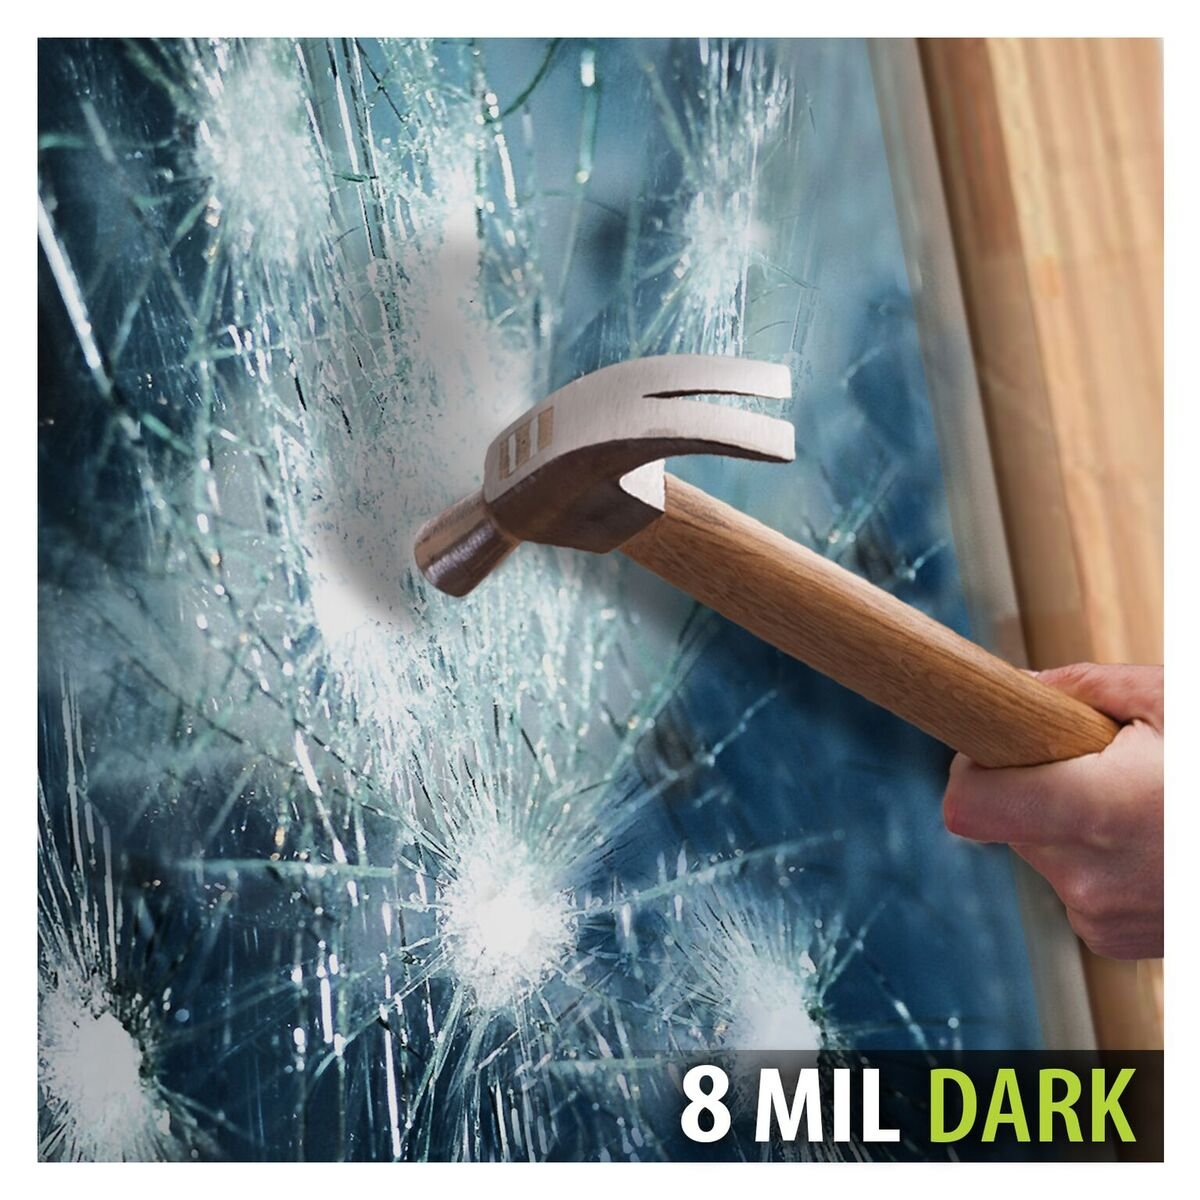 BDF S8MB20 Window Film Security and Privacy 8 Mil Black 20 (Dark) - 48in X 49ft